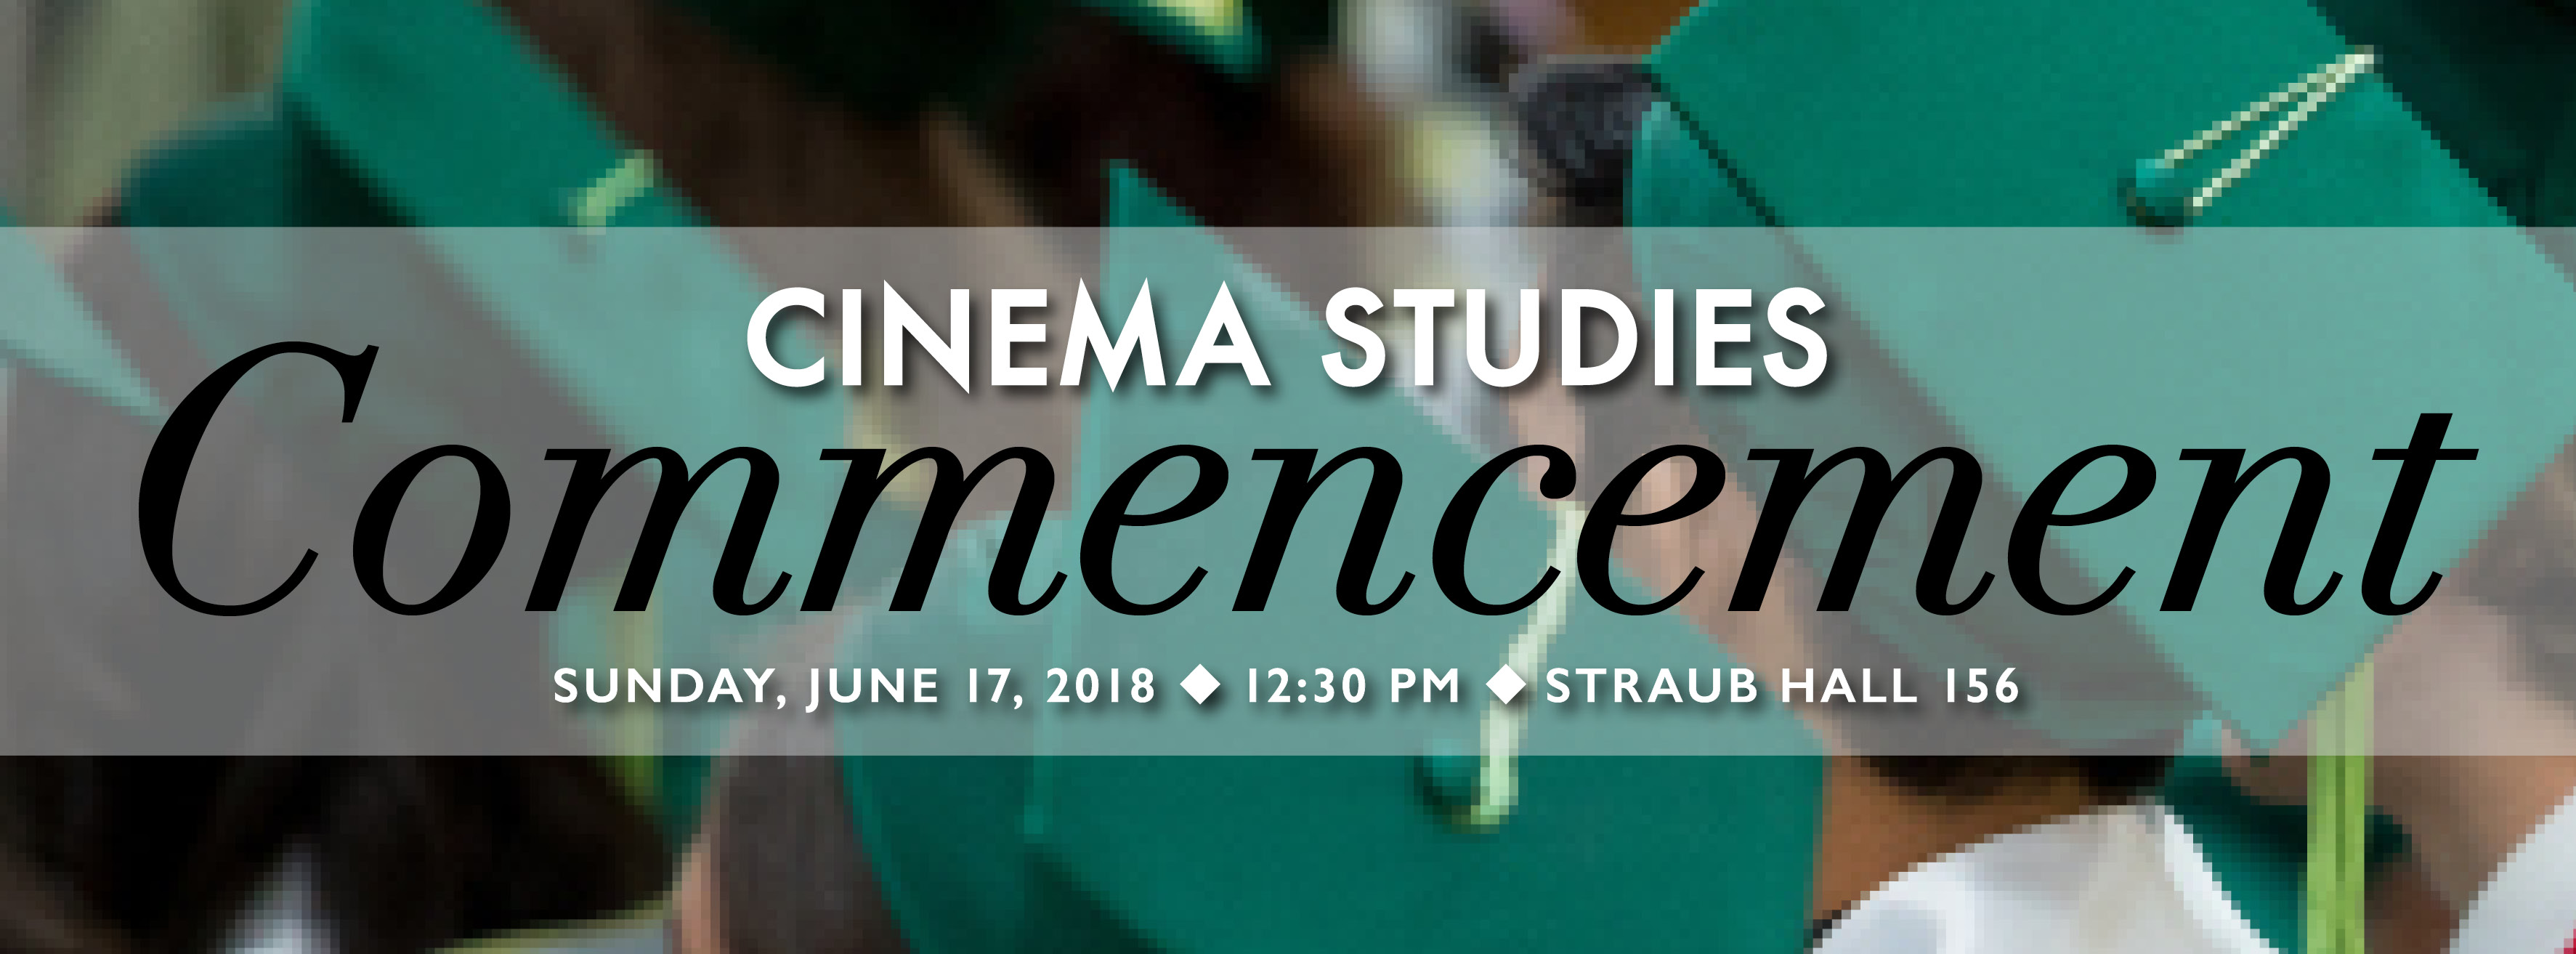 Poster for the Cinema Studies 2018 Commencement Ceremony